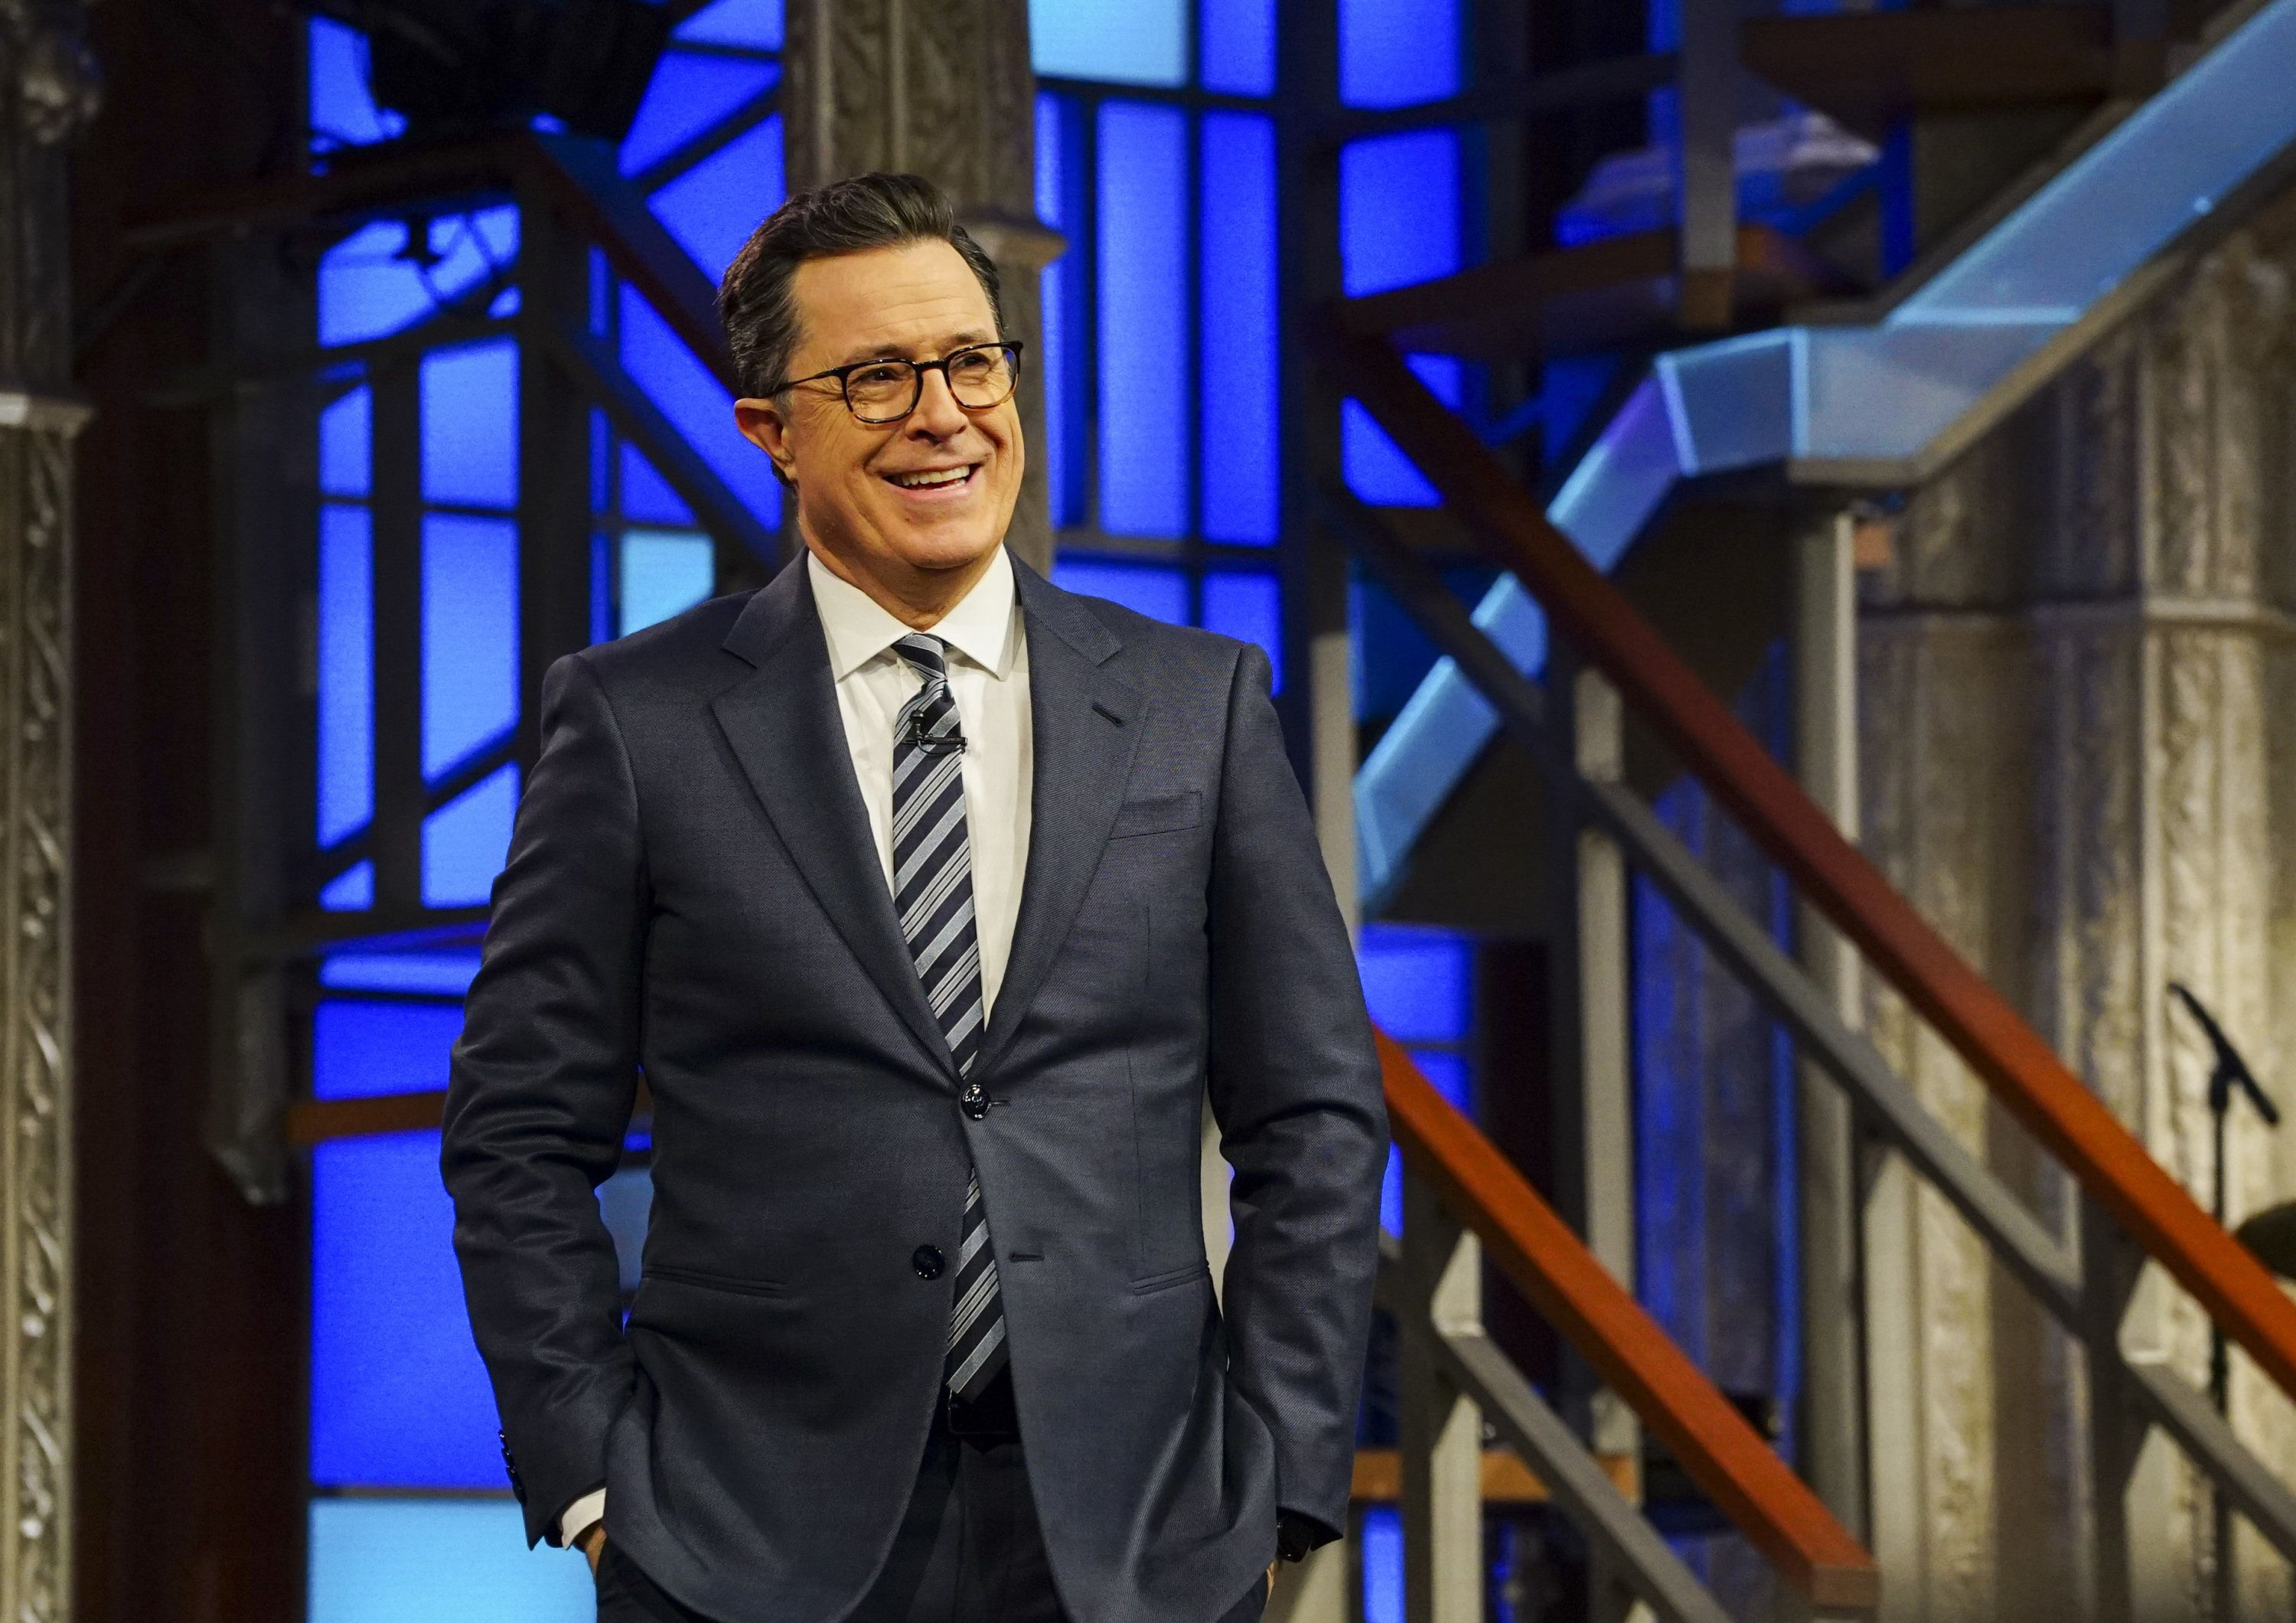 NEW YORK - FEBRUARY 15: The Late Show with Stephen Colbert airing Wednesday, Feb. 15, 2017 with Bob Odenkirk, Tatiana Maslany and George Saunders. Pictured: Stephen Colbert. (Photo by Gail Schulman/CBS via Getty Images)